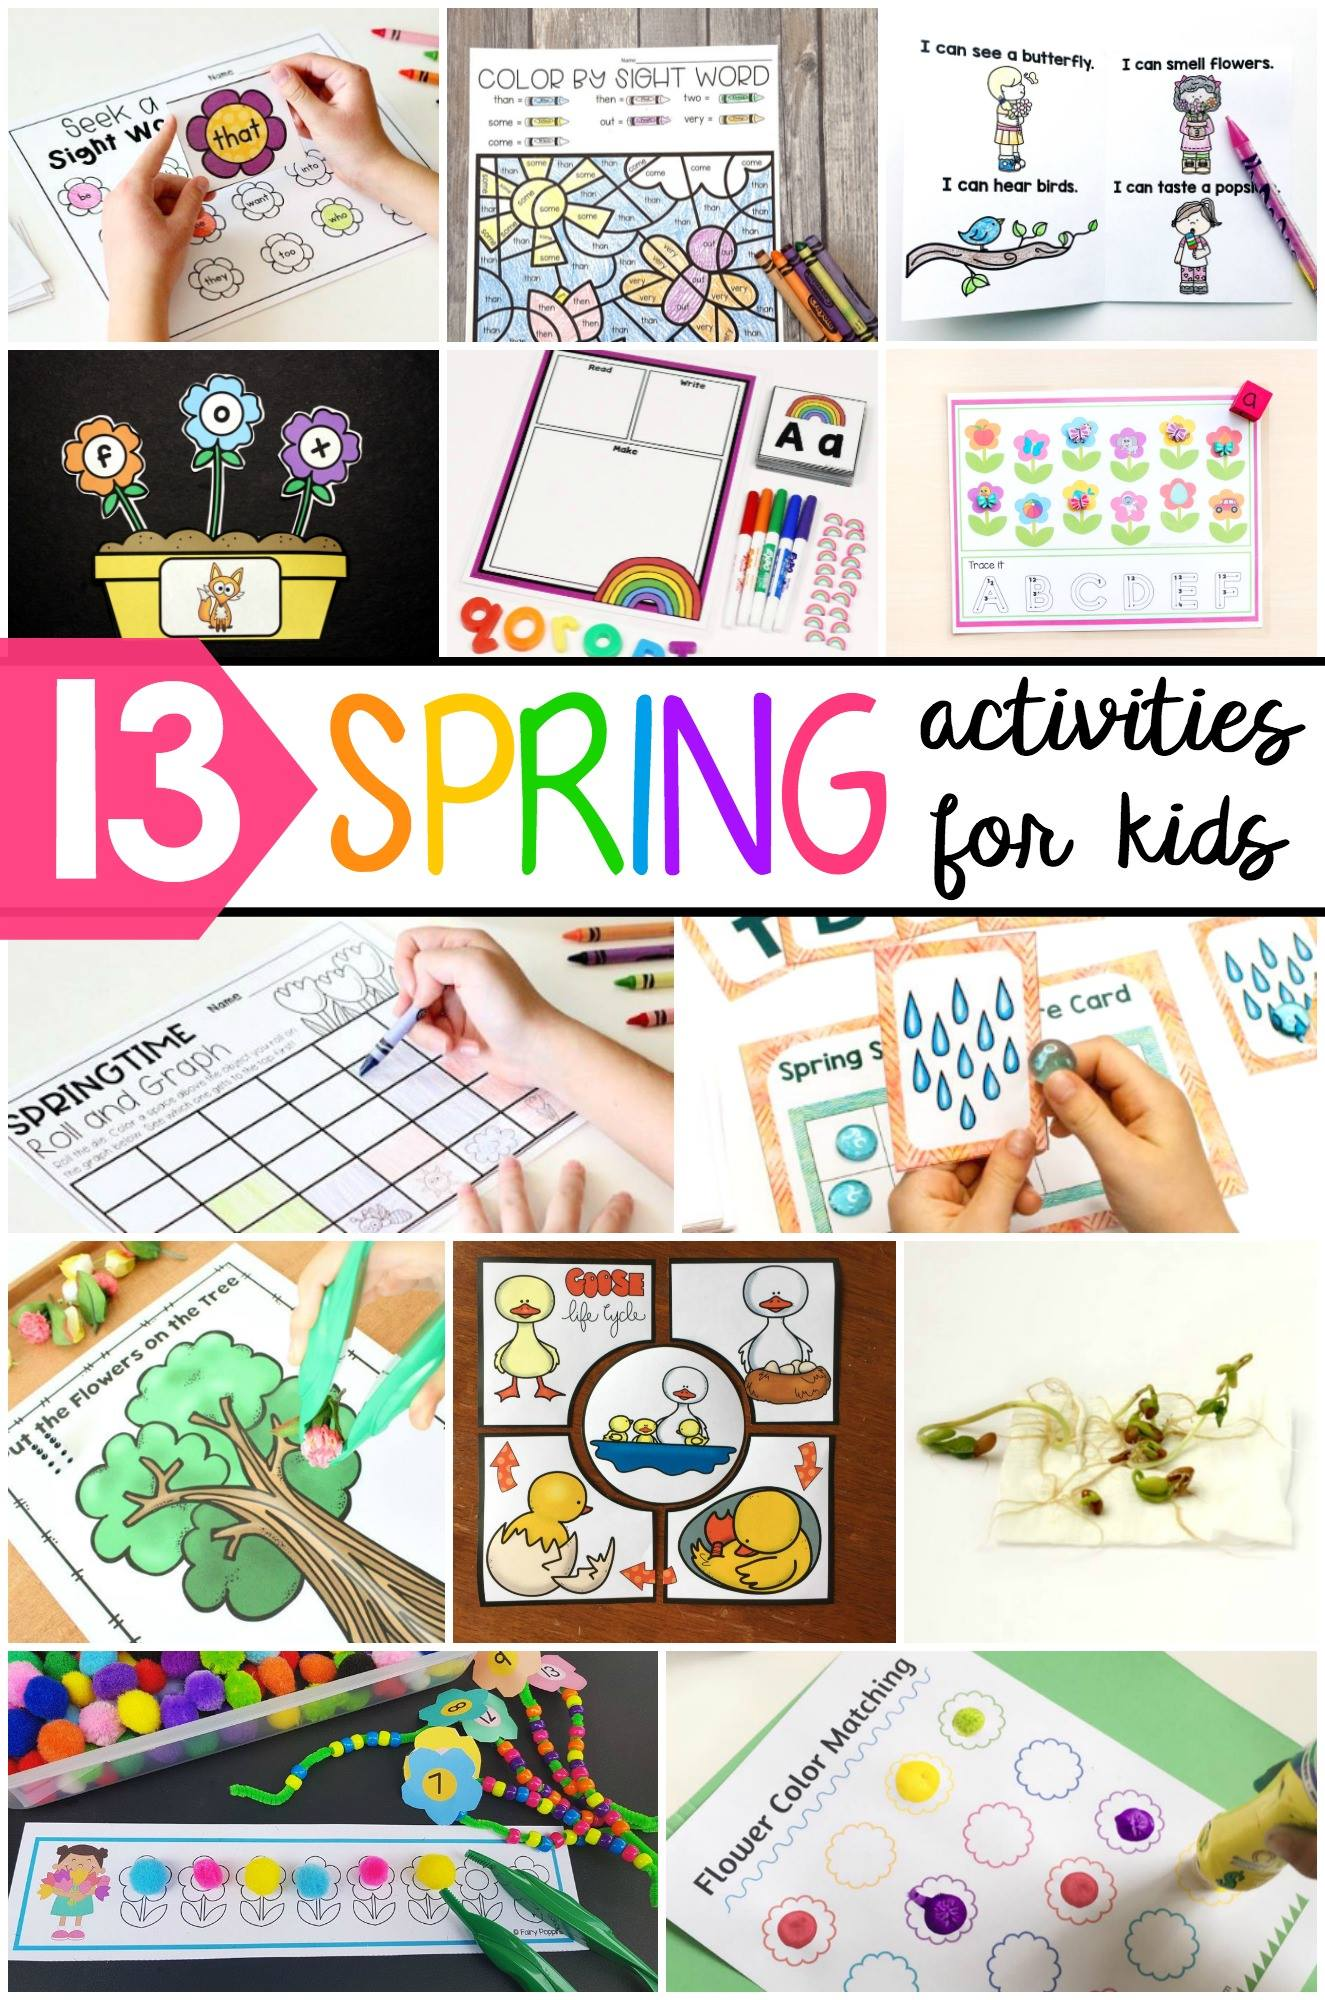 Spring printables and activities for kids!